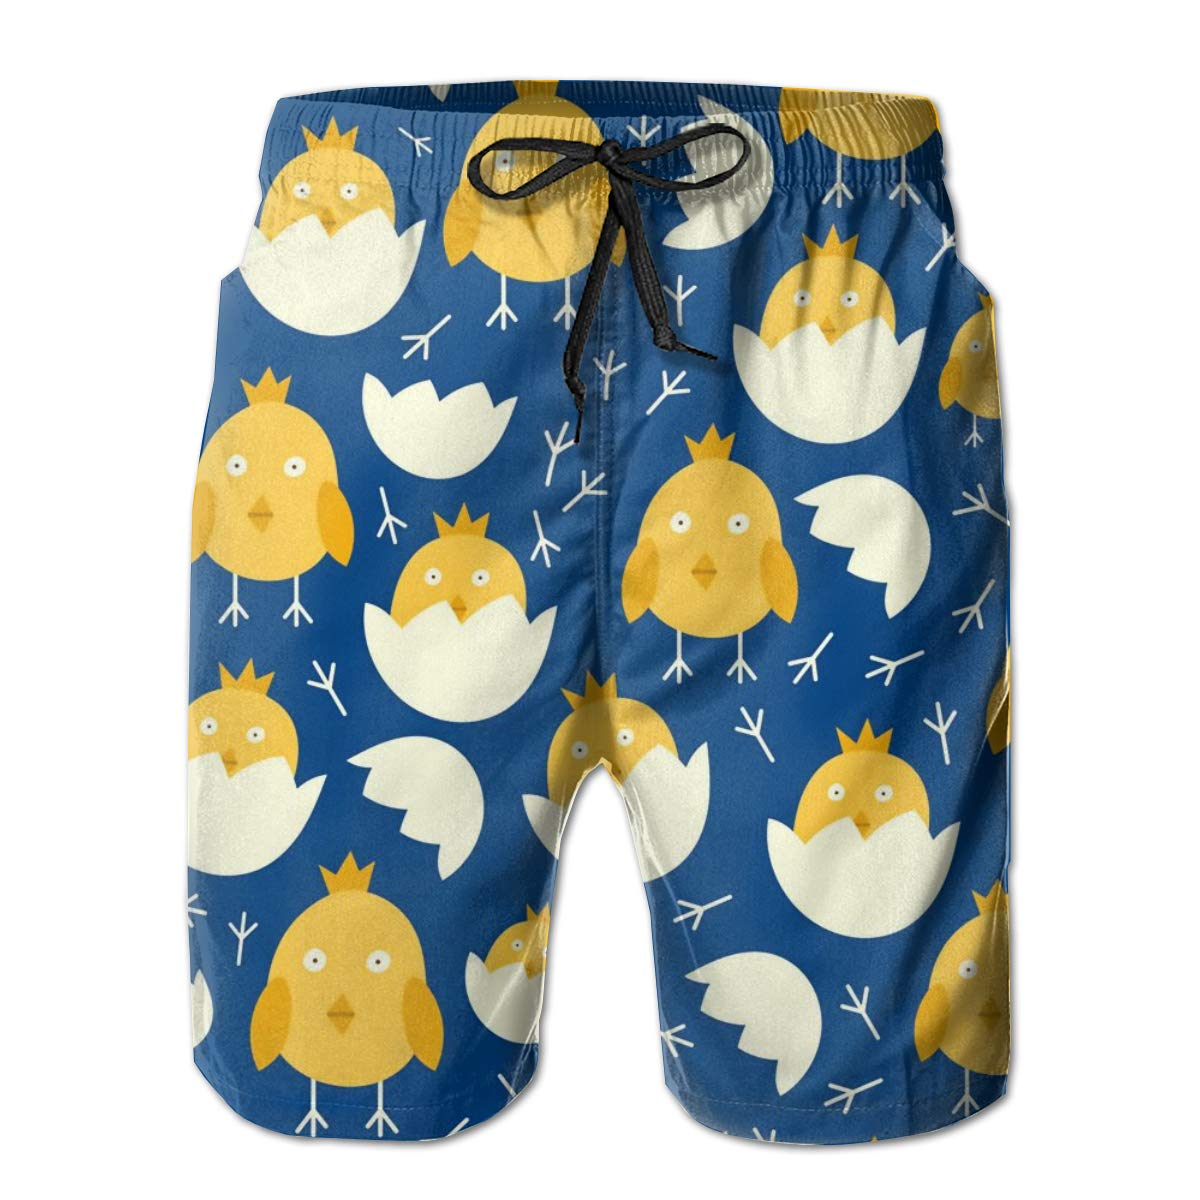 SARA NELL Mens Shorts Easter Pattern with Chicks Quick Dry Swim Trunks Beach Board Shorts